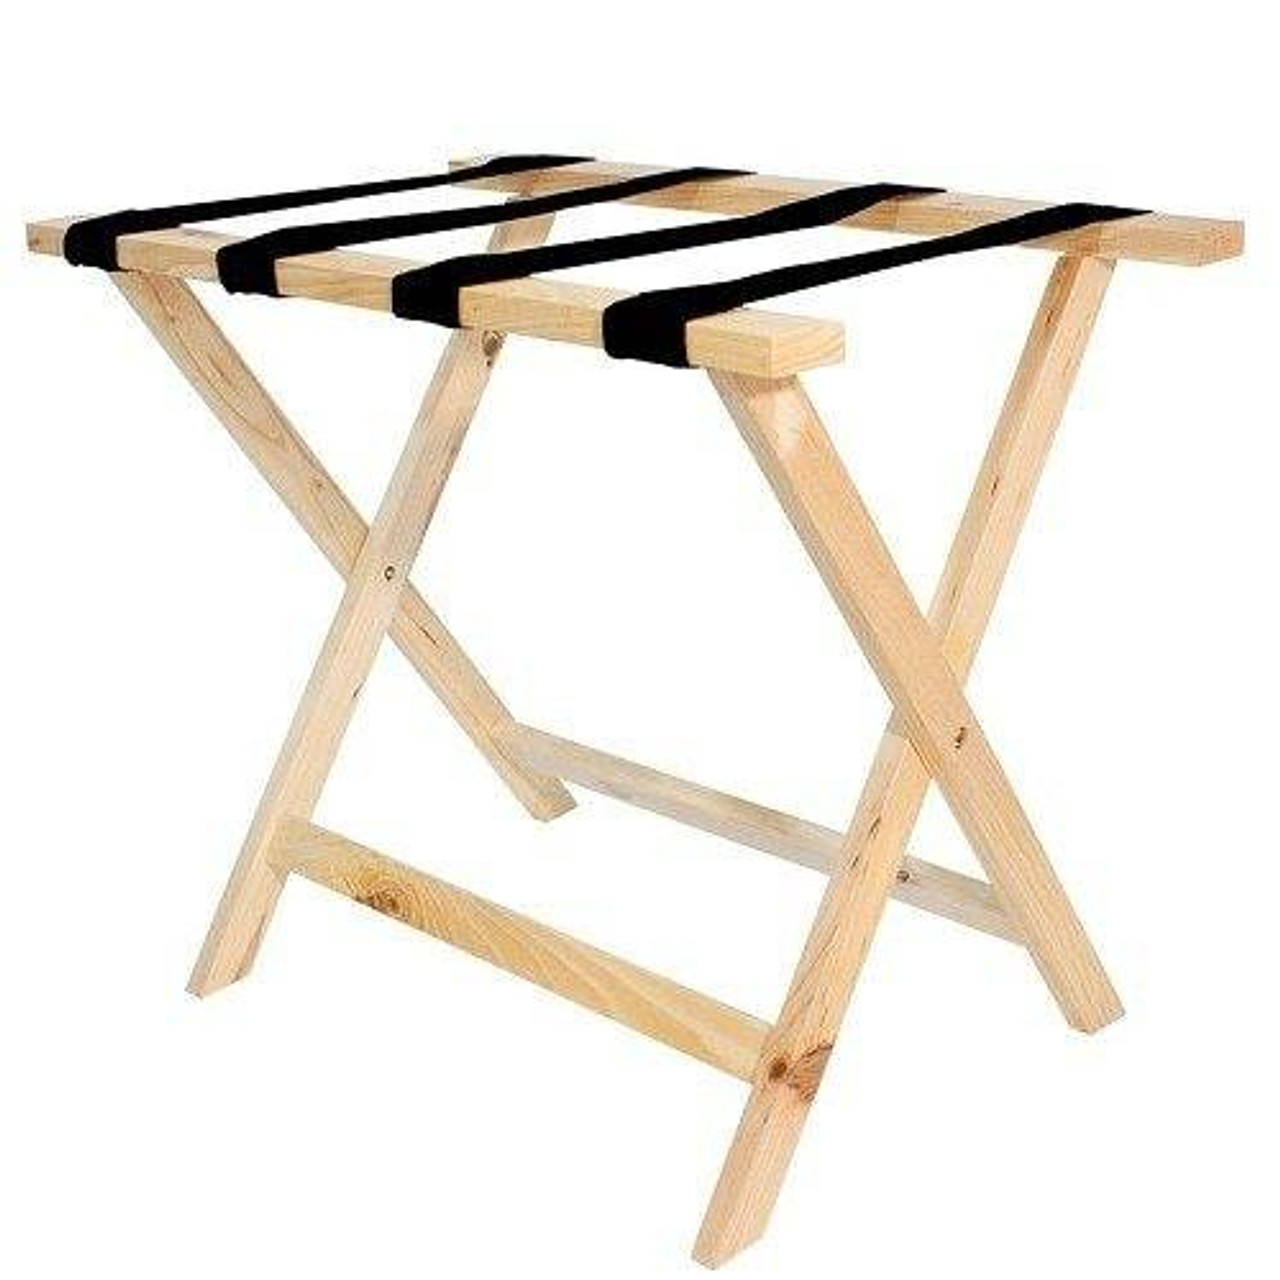 HOSPITALITY 1 SOURCE HOSPITALITY 1 SOURCE or DELUXE WOODEN LUGGAGE RACK or BLACK STRAPS or NATURAL FINISH or 4 PER CASE